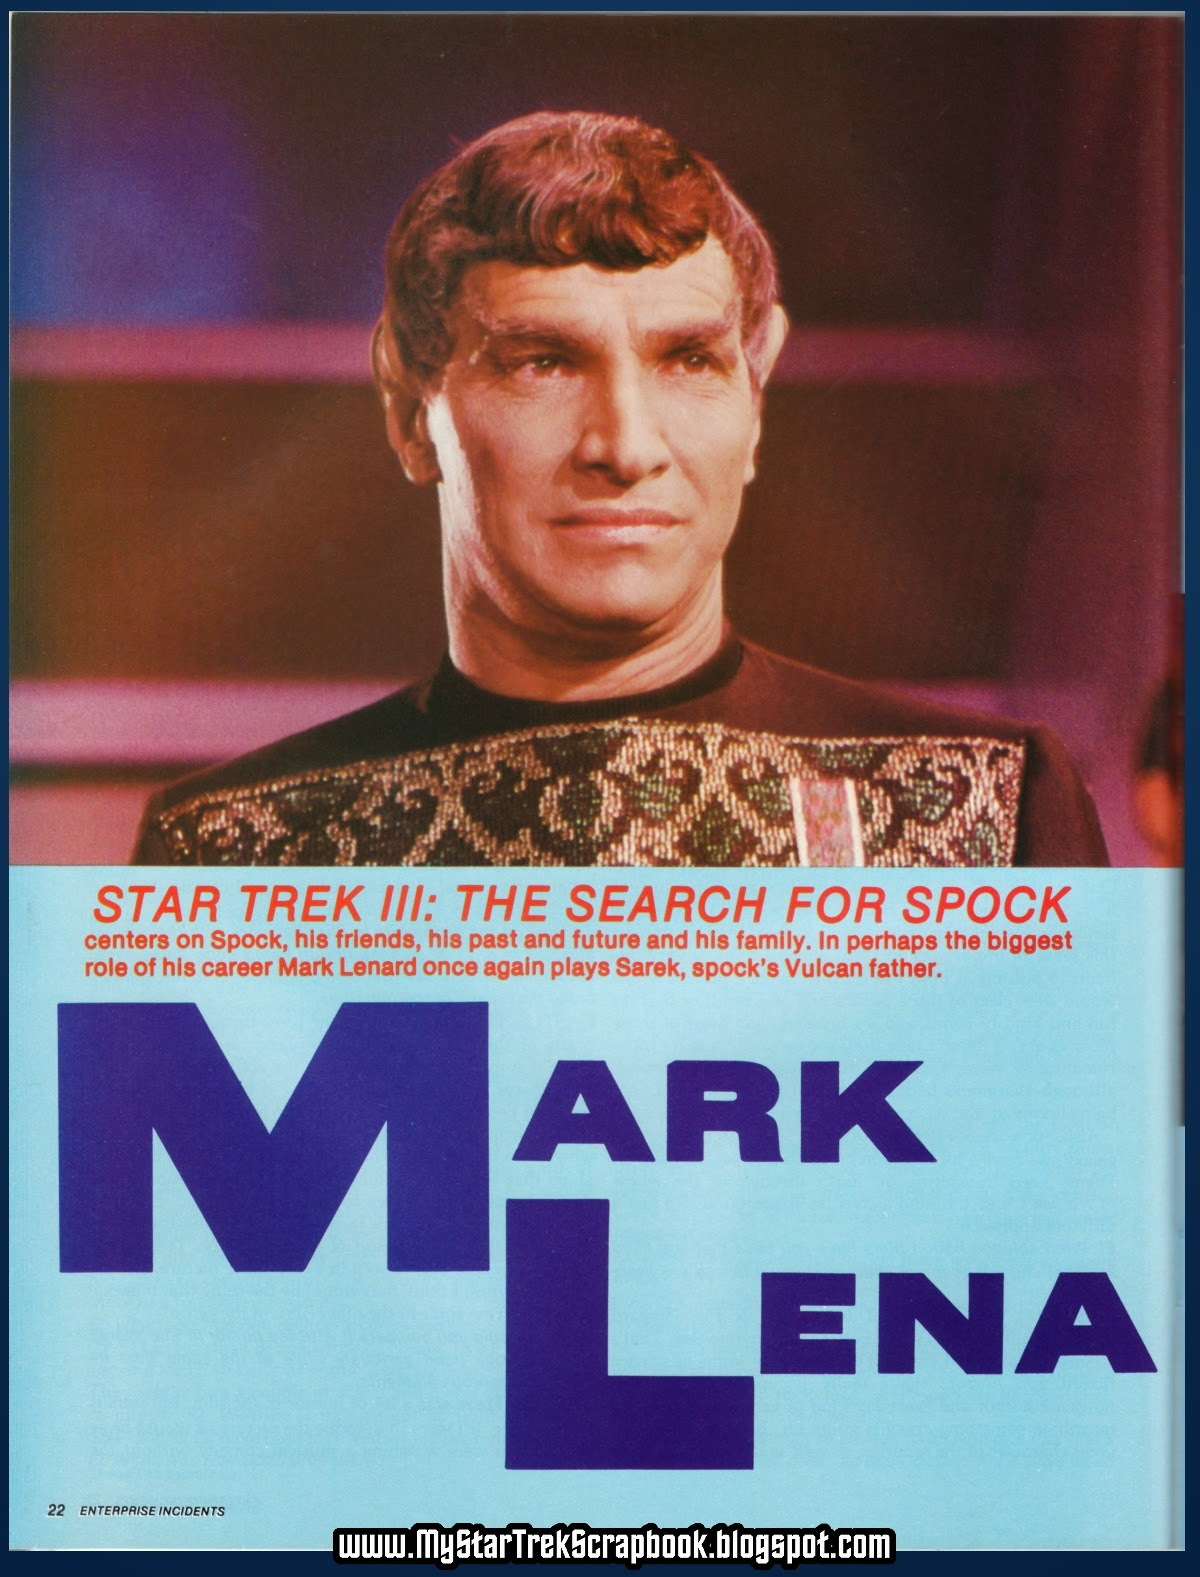 mark lenard mission impossiblemark lenard star trek, mark lenard klingon, mark lenard hang em high, mark lenard death, mark lenard interview, mark lenard autograph, mark lenard grave, mark lenard star trek roles, mark lenard cause of death, mark lenard planet of the apes, mark lenard romulan, mark lenard imdb, mark lenard mission impossible, mark lenard buck rogers, марк ленард, mark lenard obituary, mark lenard schulman, mark lenard annie mac, mark lenard here come the brides, mark lenard facebook